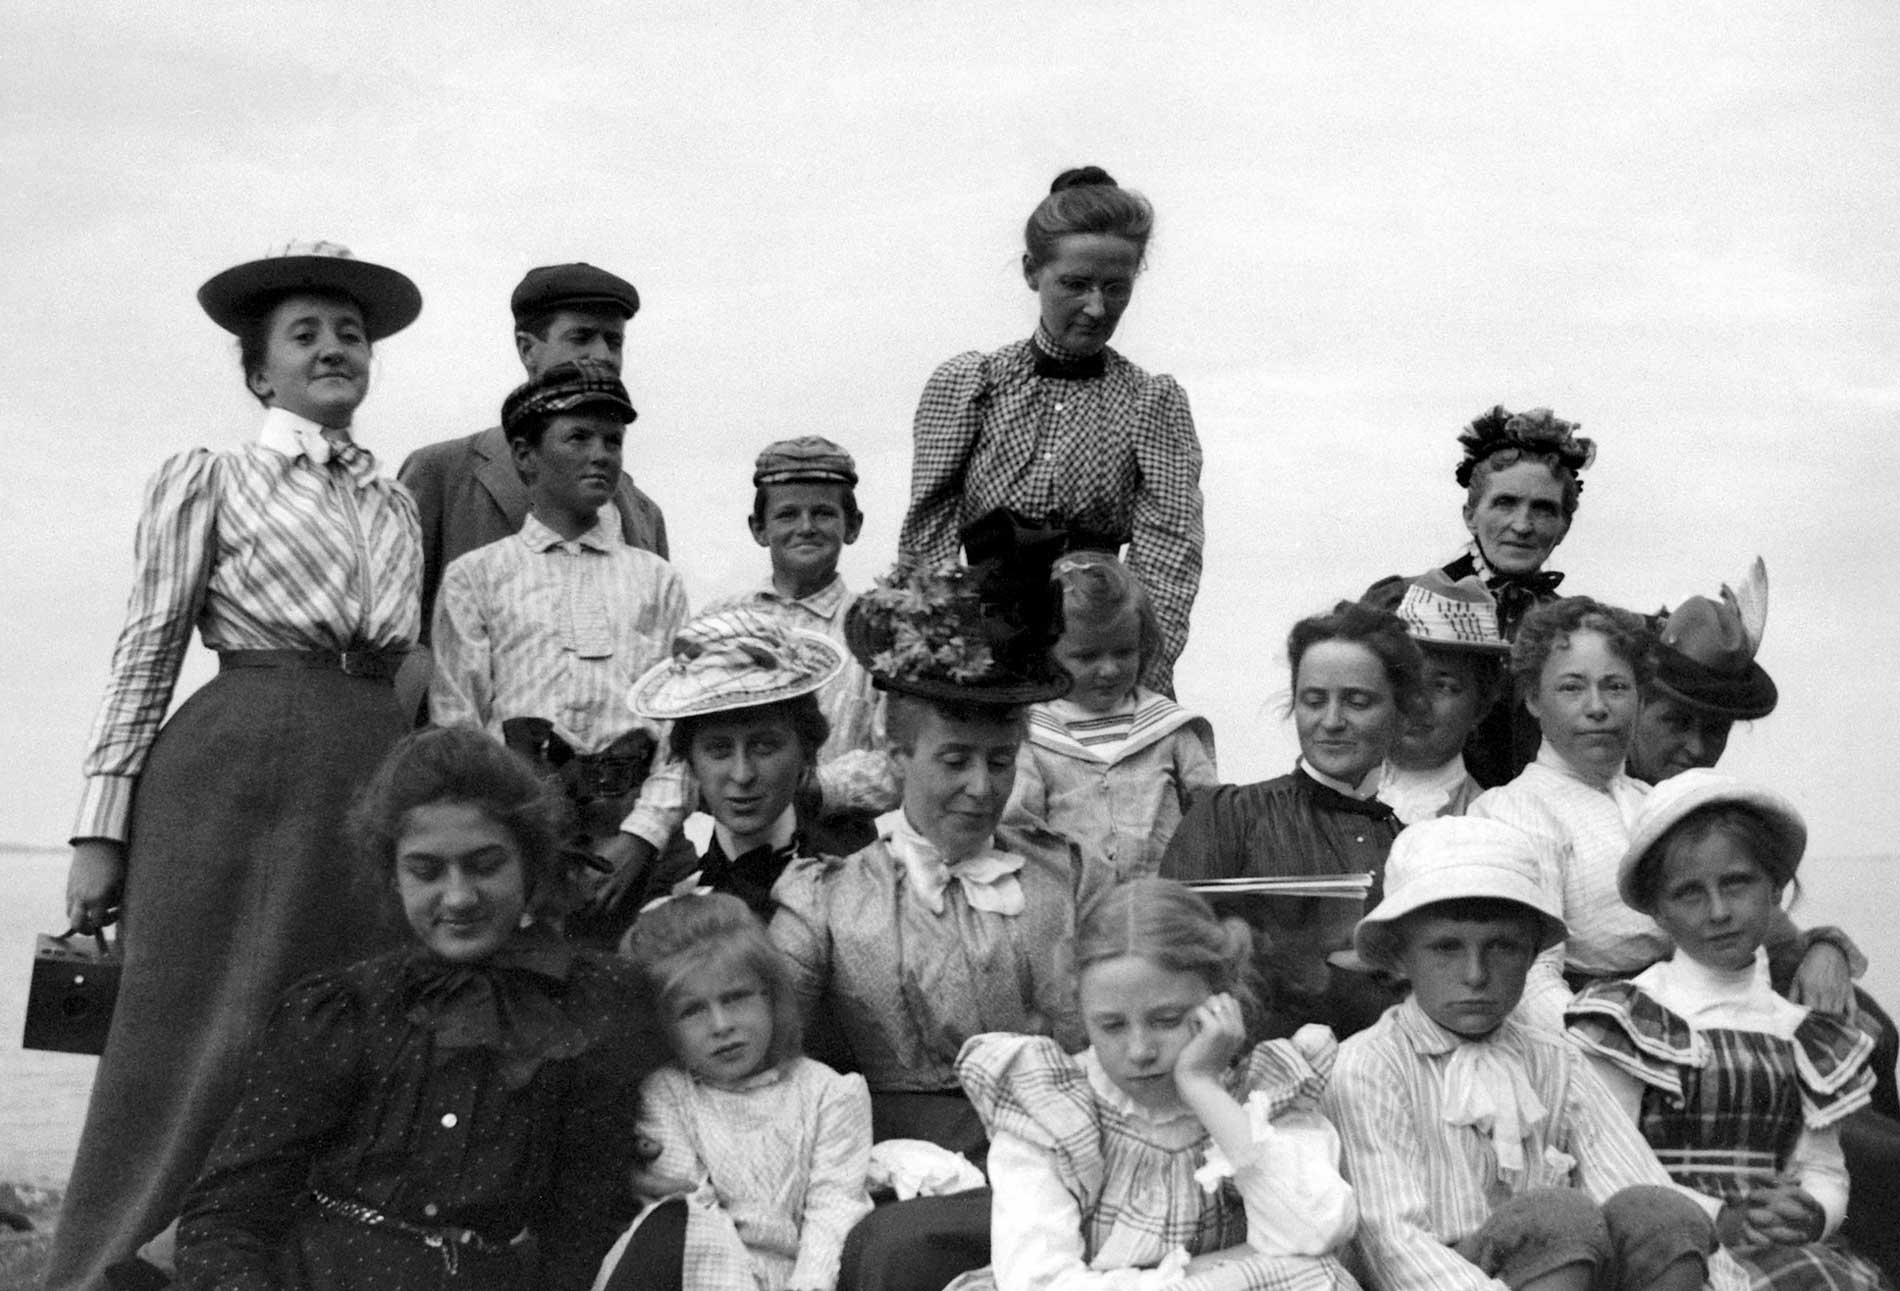 July 1900 - Picnic at Ogier Point. Theresa's sister Grace is in the middle with the white hat, and their mother, Mrs. Parker, is at the far top right.